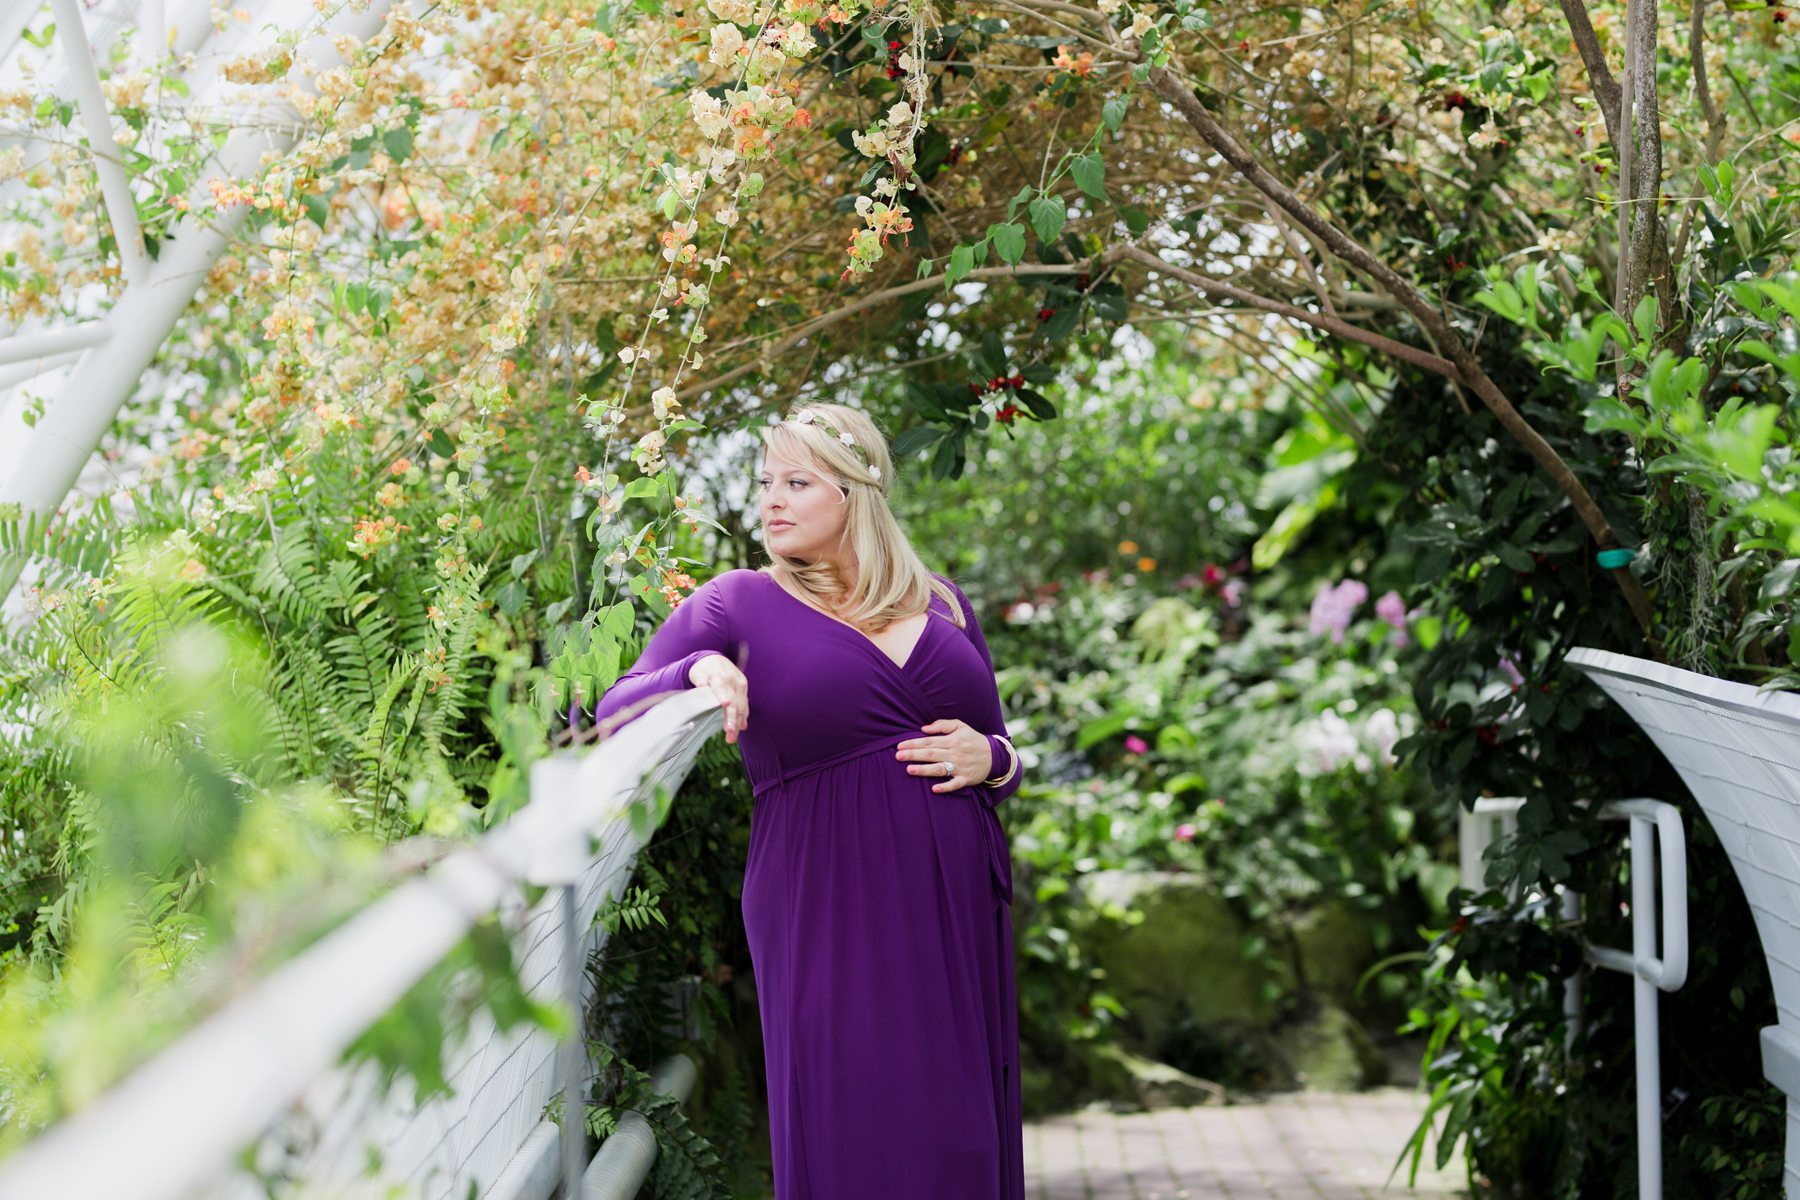 Myriad_Gardens_Baby_Bump_Photos_nature.jpg